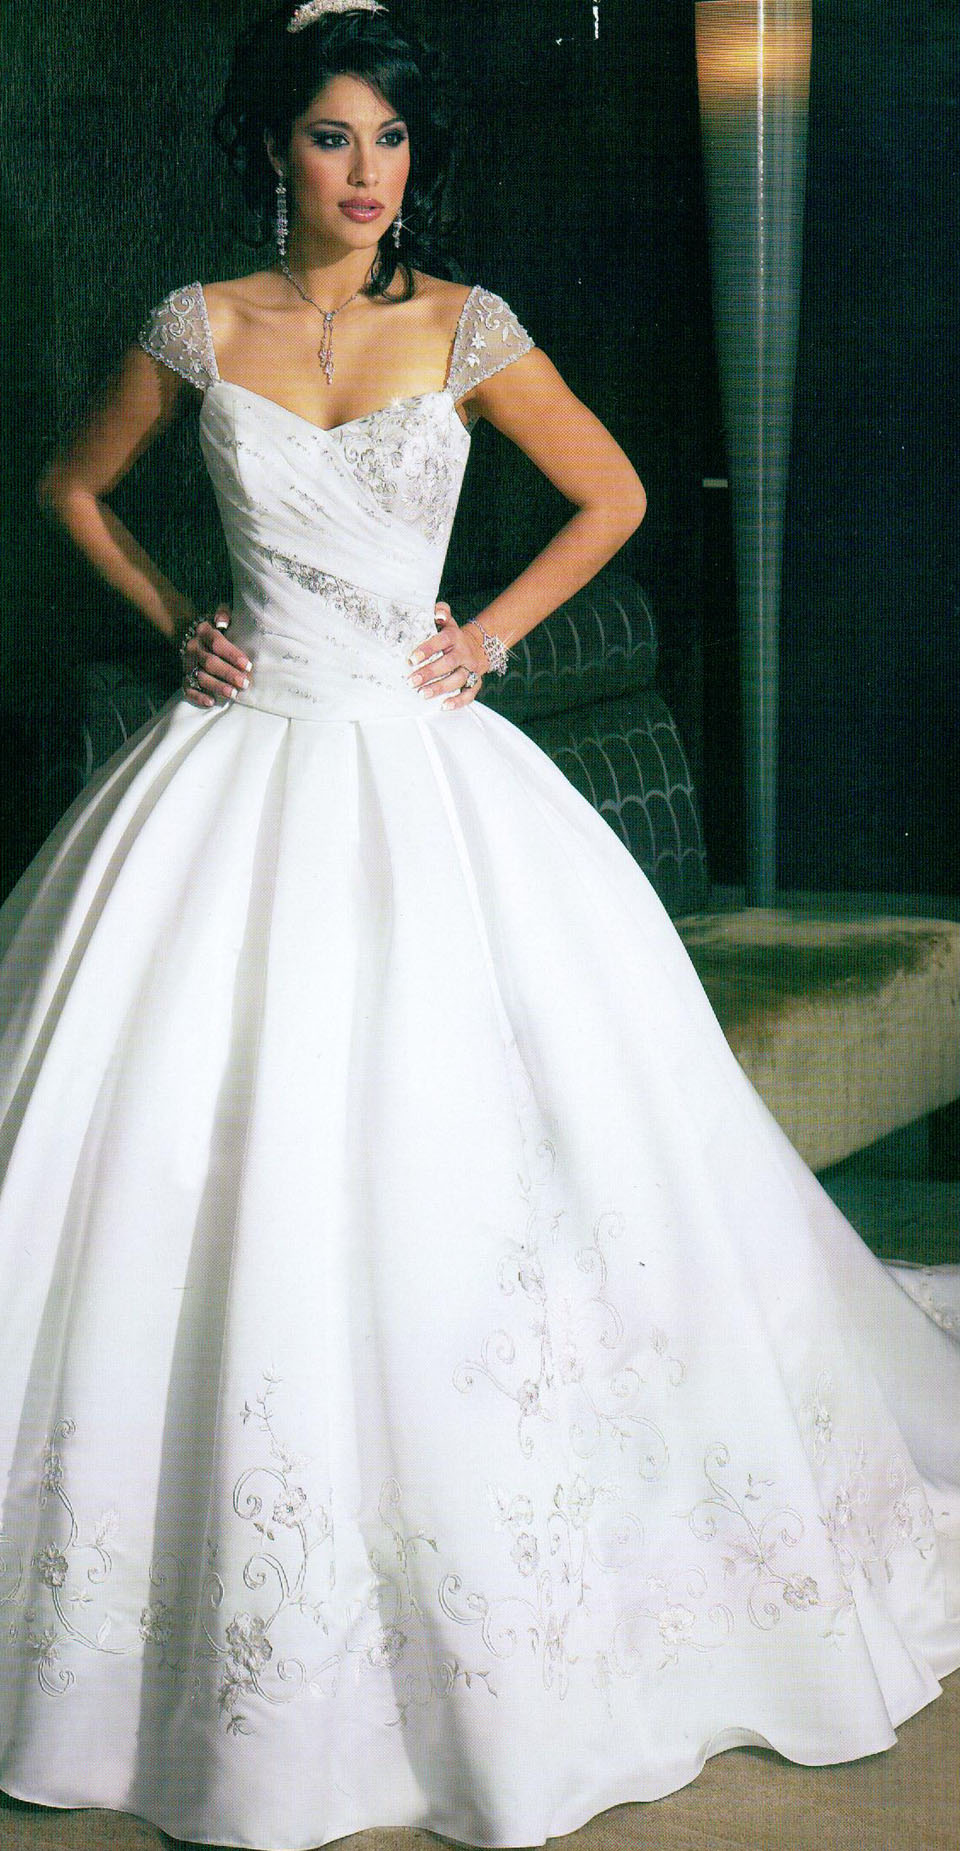 wedding gown rental las vegas nv wedding gown rental results for Wedding dress rental in Las Vegas NV Yelp has more than reviews for these businesses so we can give you the best results